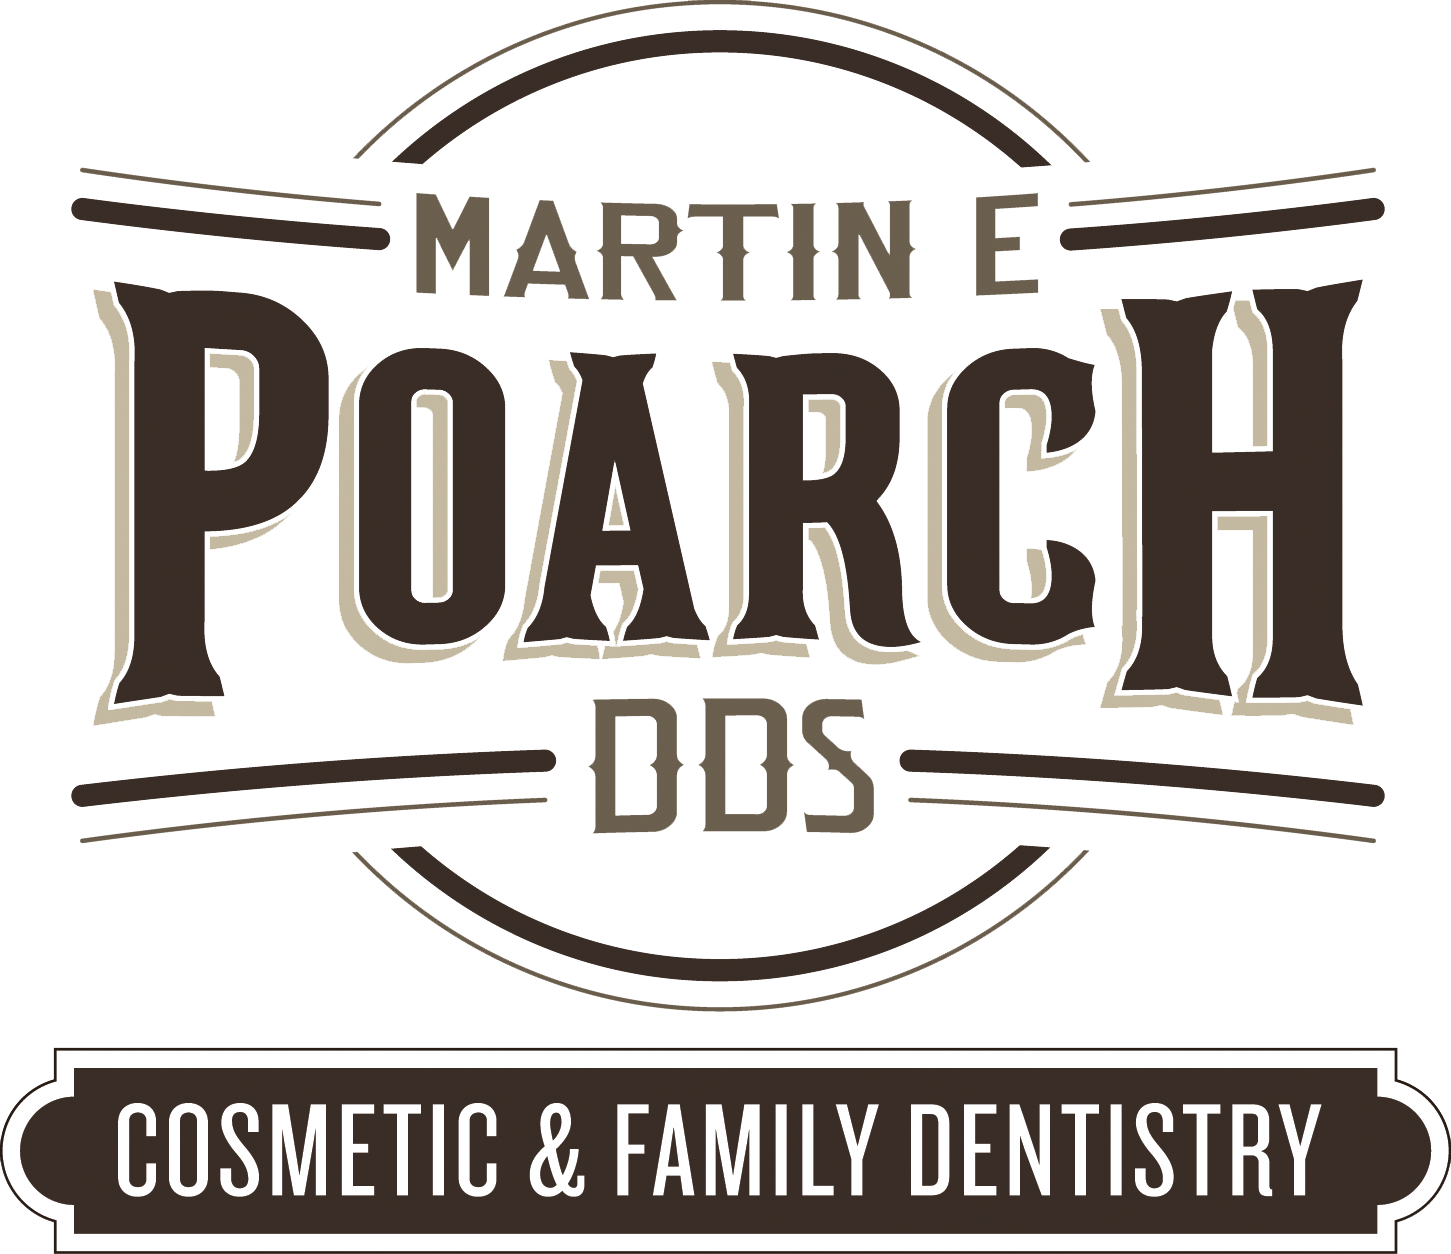 Martin E. Poarch DDS Cosmetic and Family Dentistry